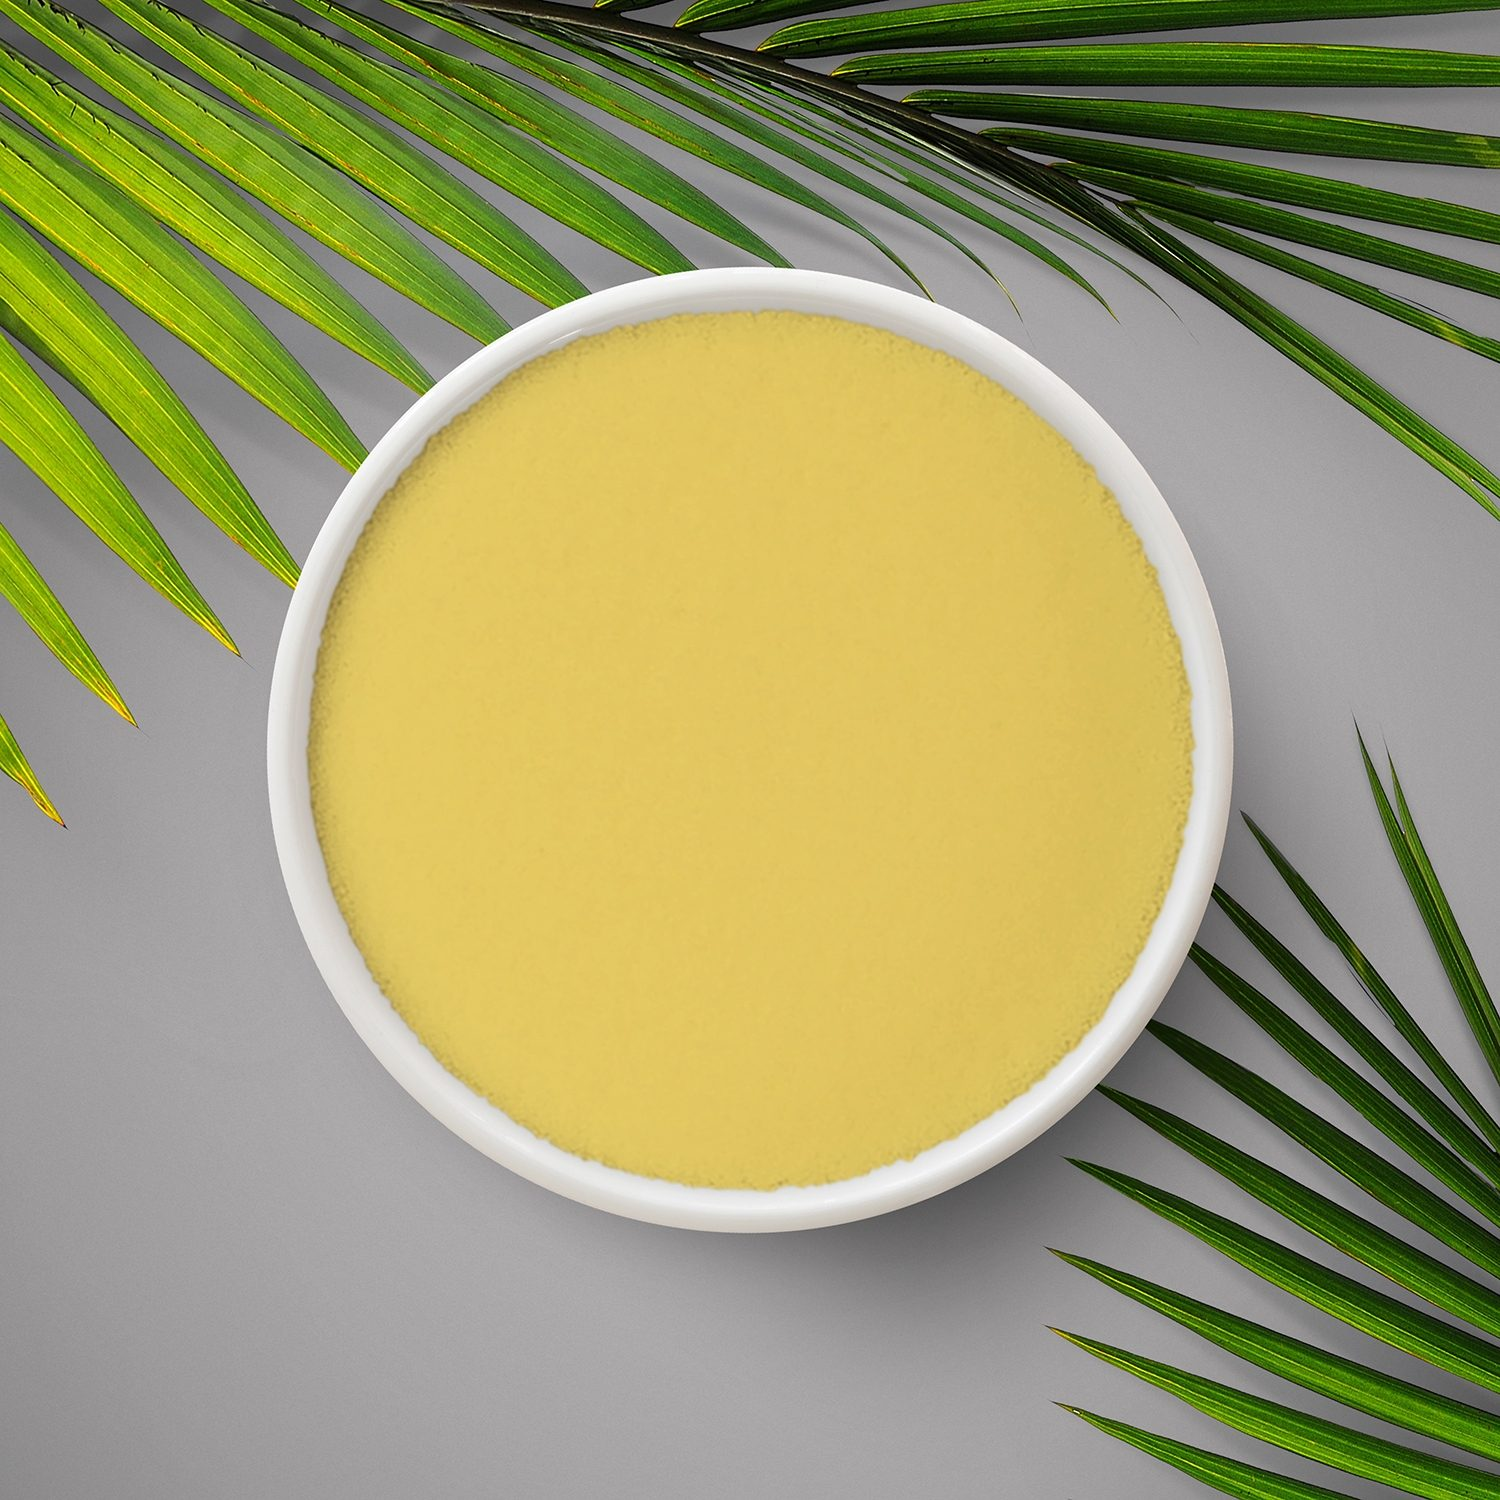 Fine wax powder with yellowish colour and pine leaves around the edge.